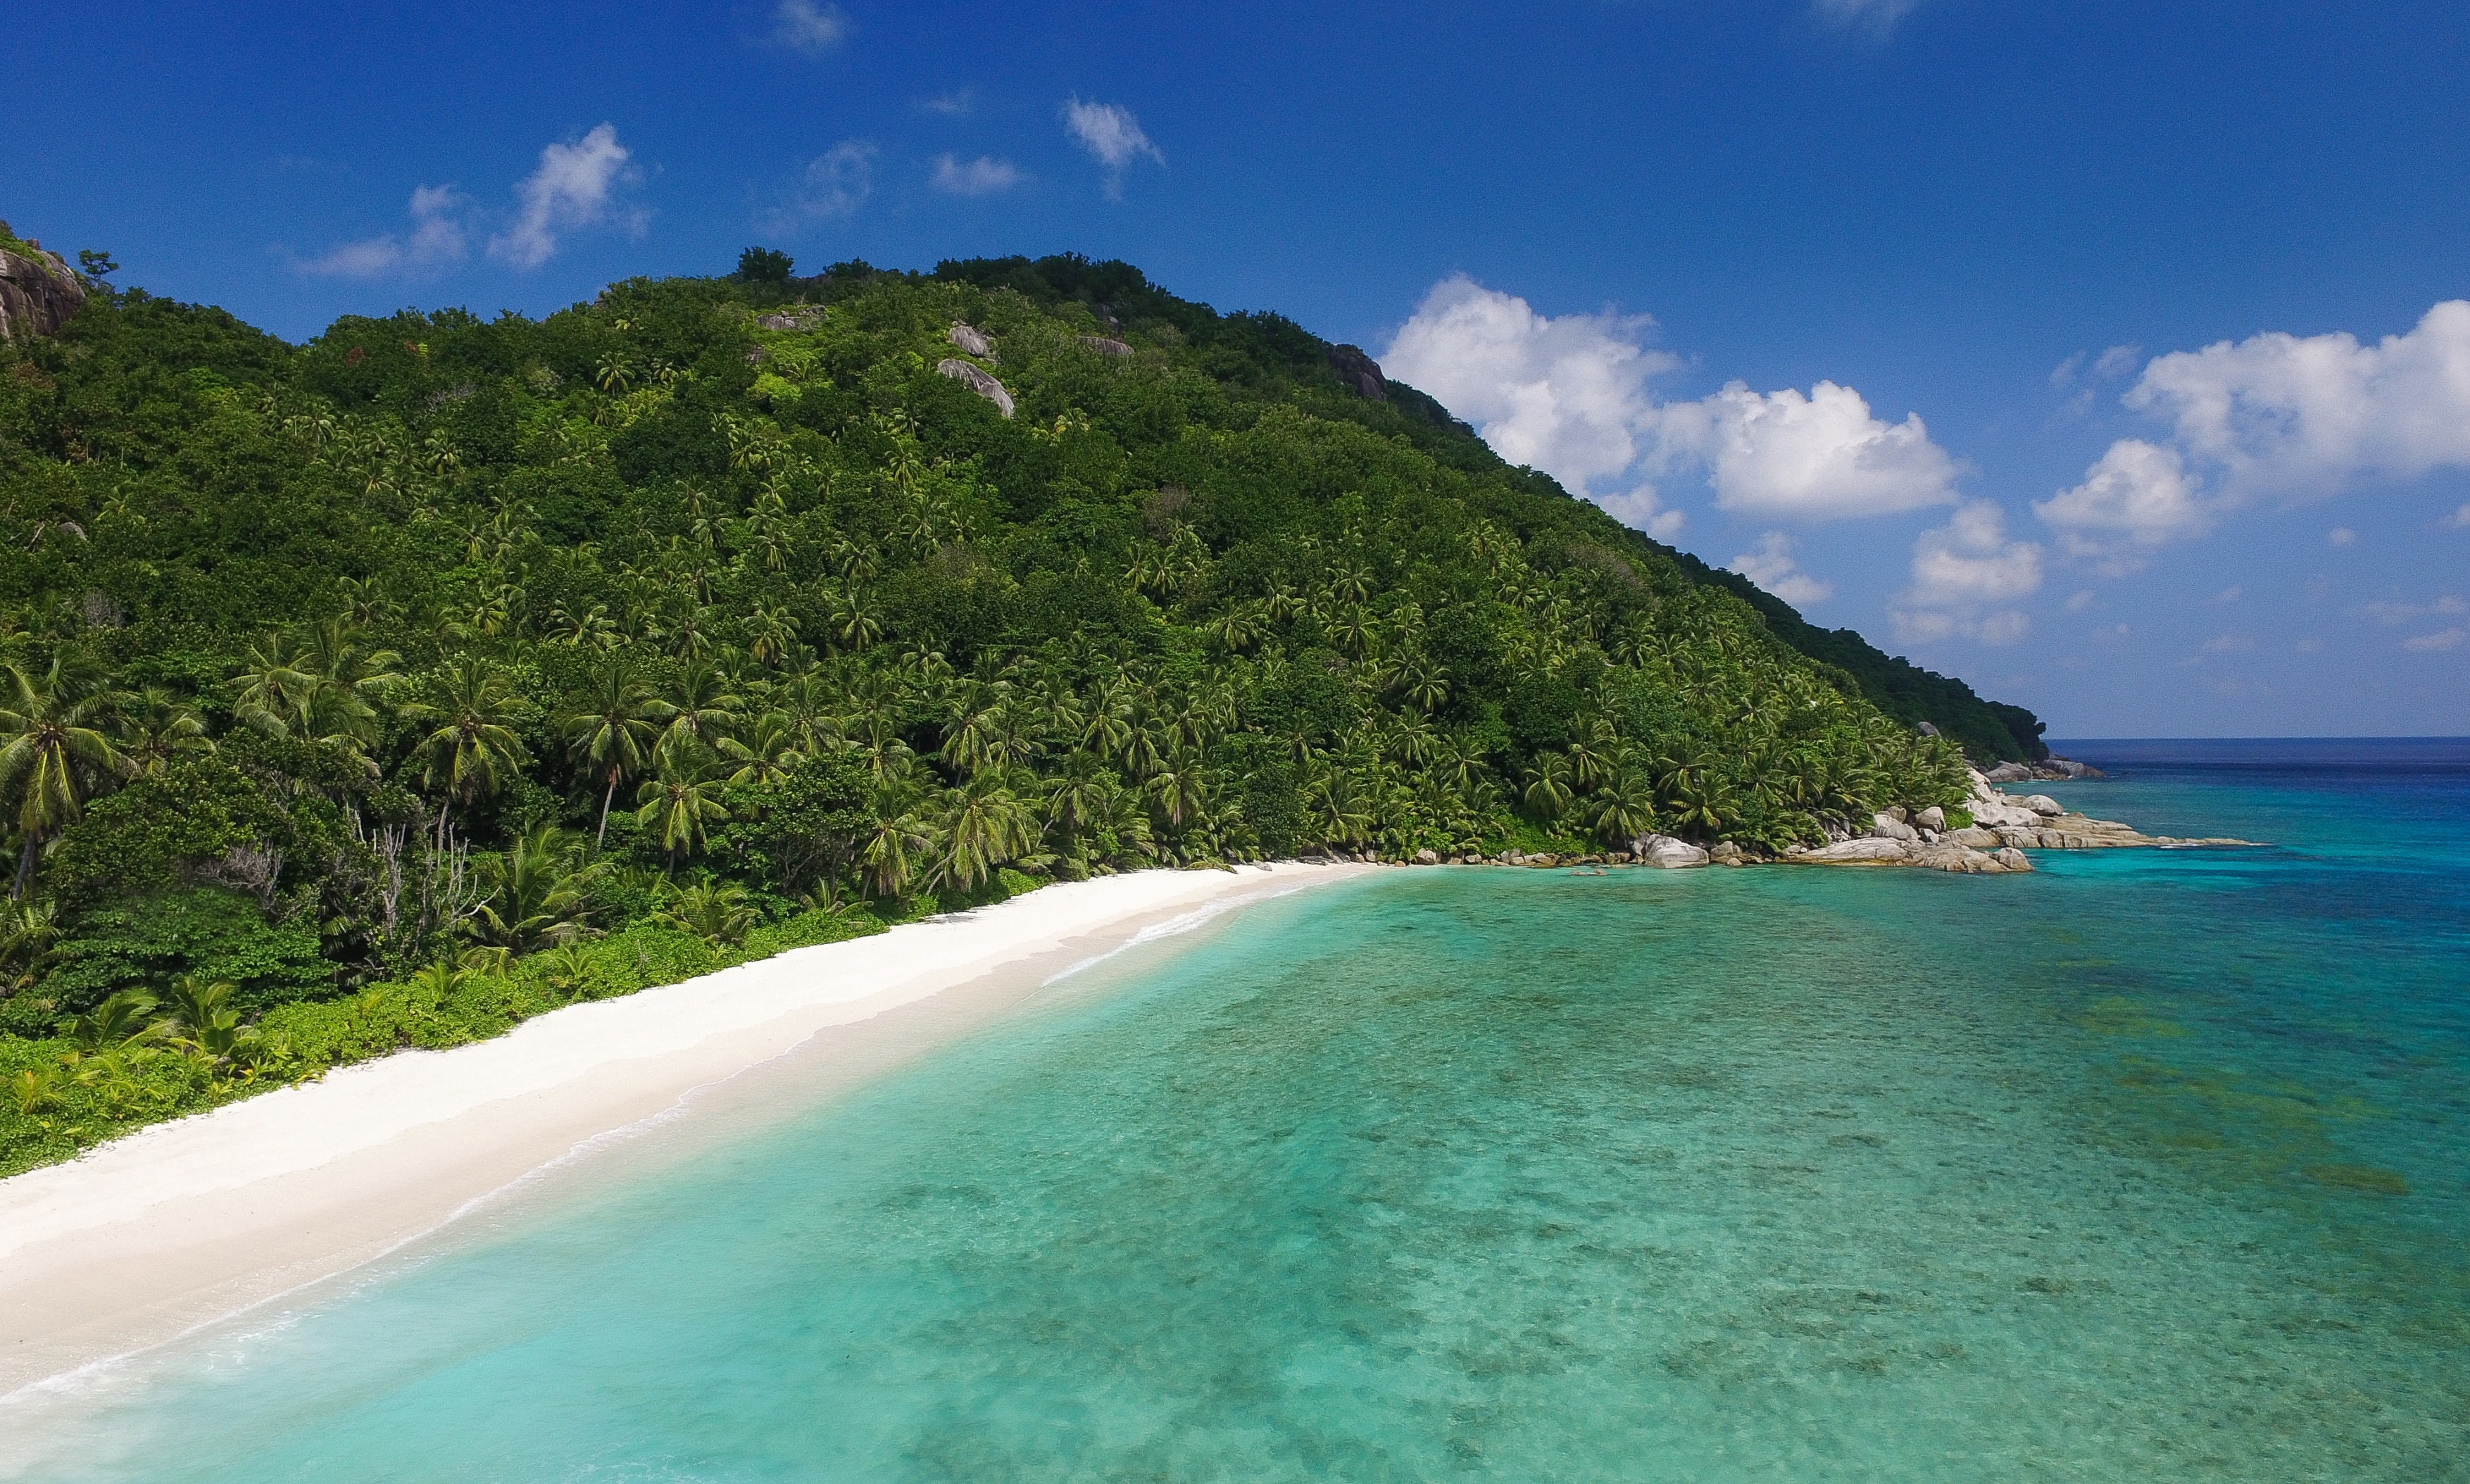 12 reasons why you should visit Seychelles at least once - the best beaches in the world